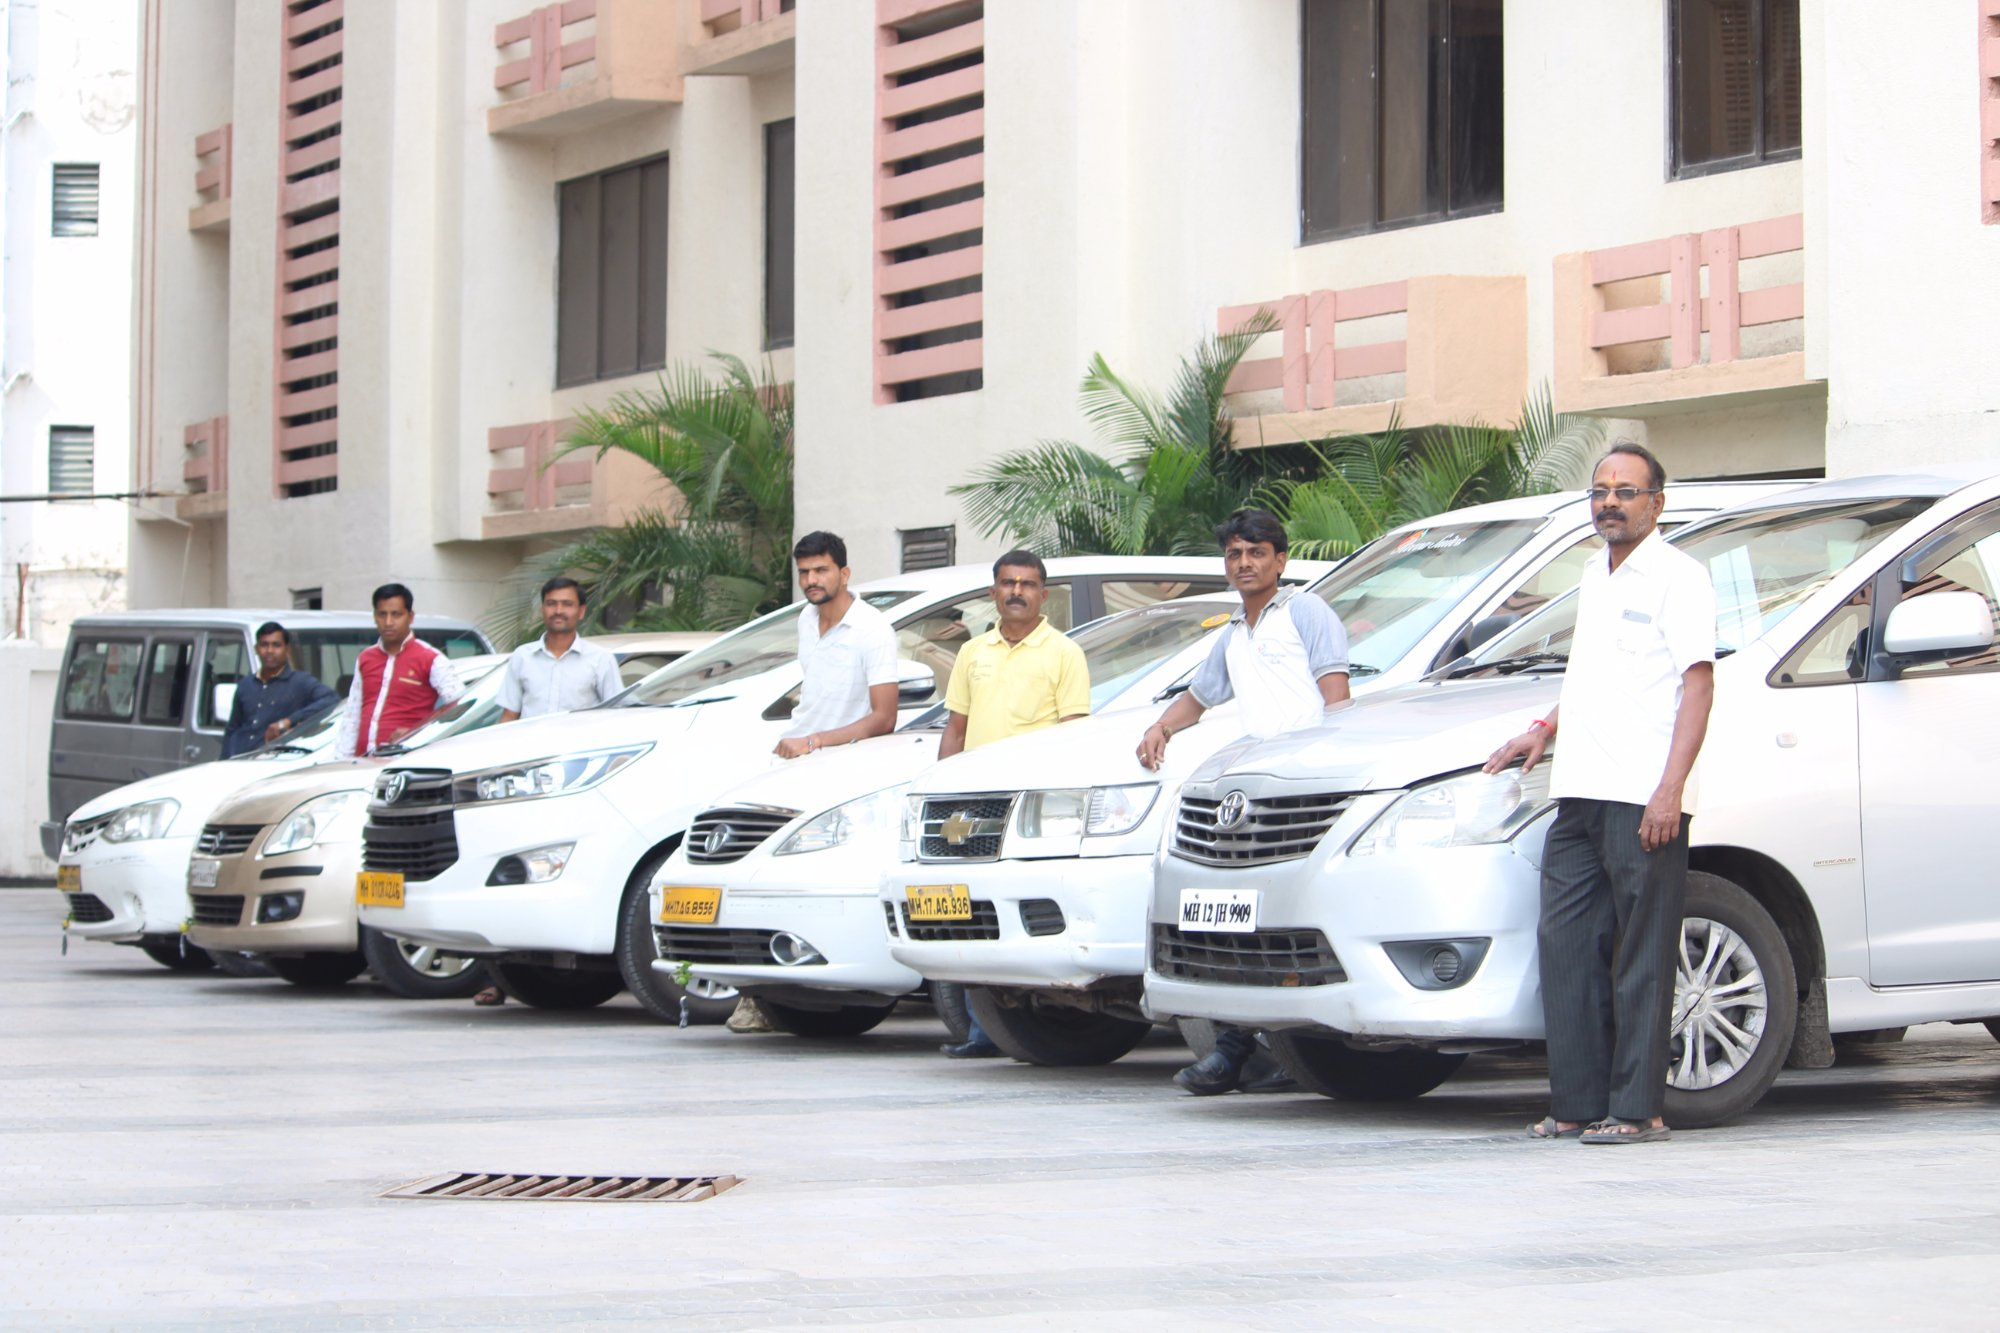 hire-car-cabs-taxi-in